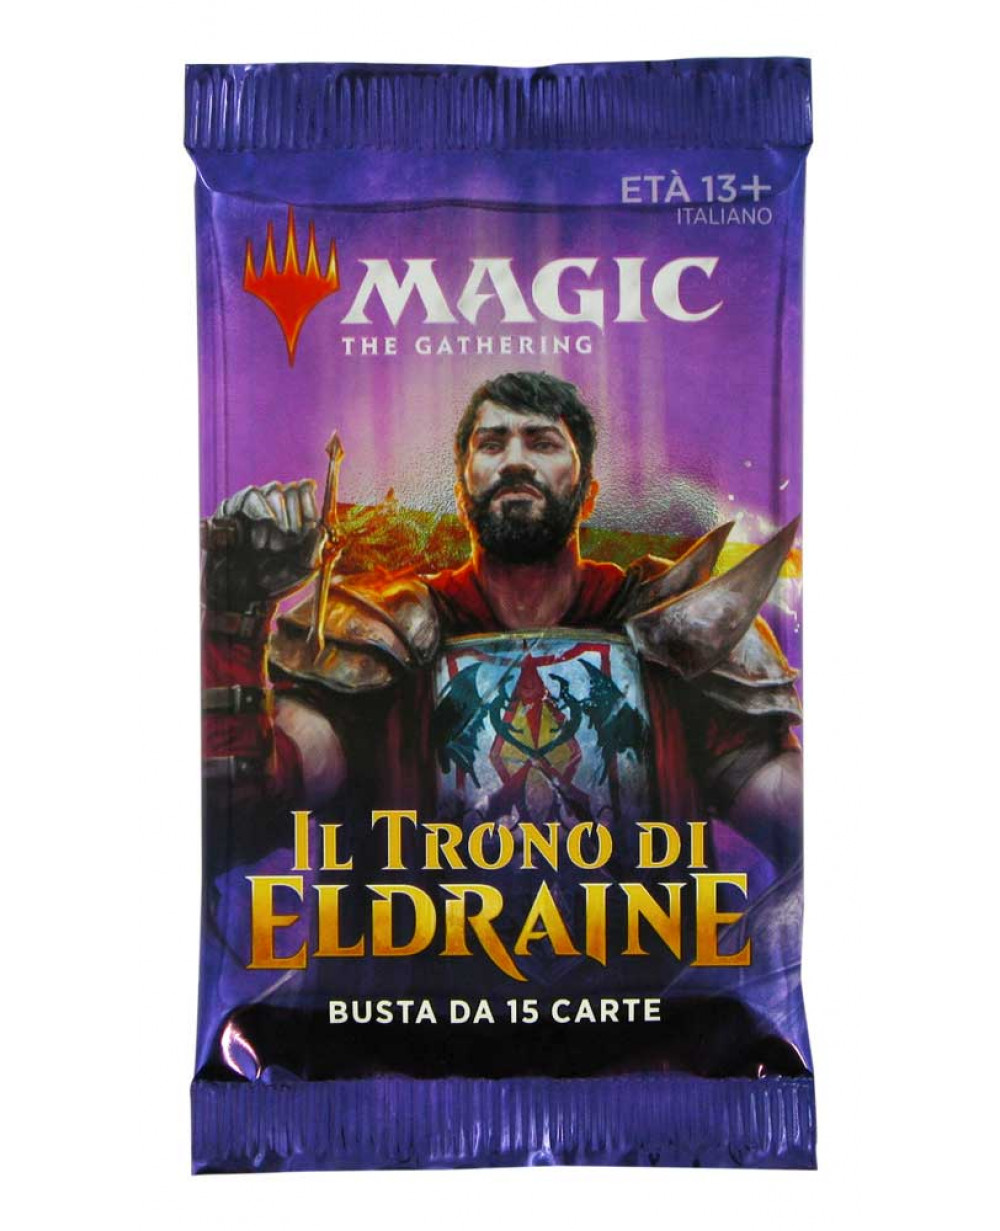 MAGIC IL TRONO DI ELDRAINE BUSTA